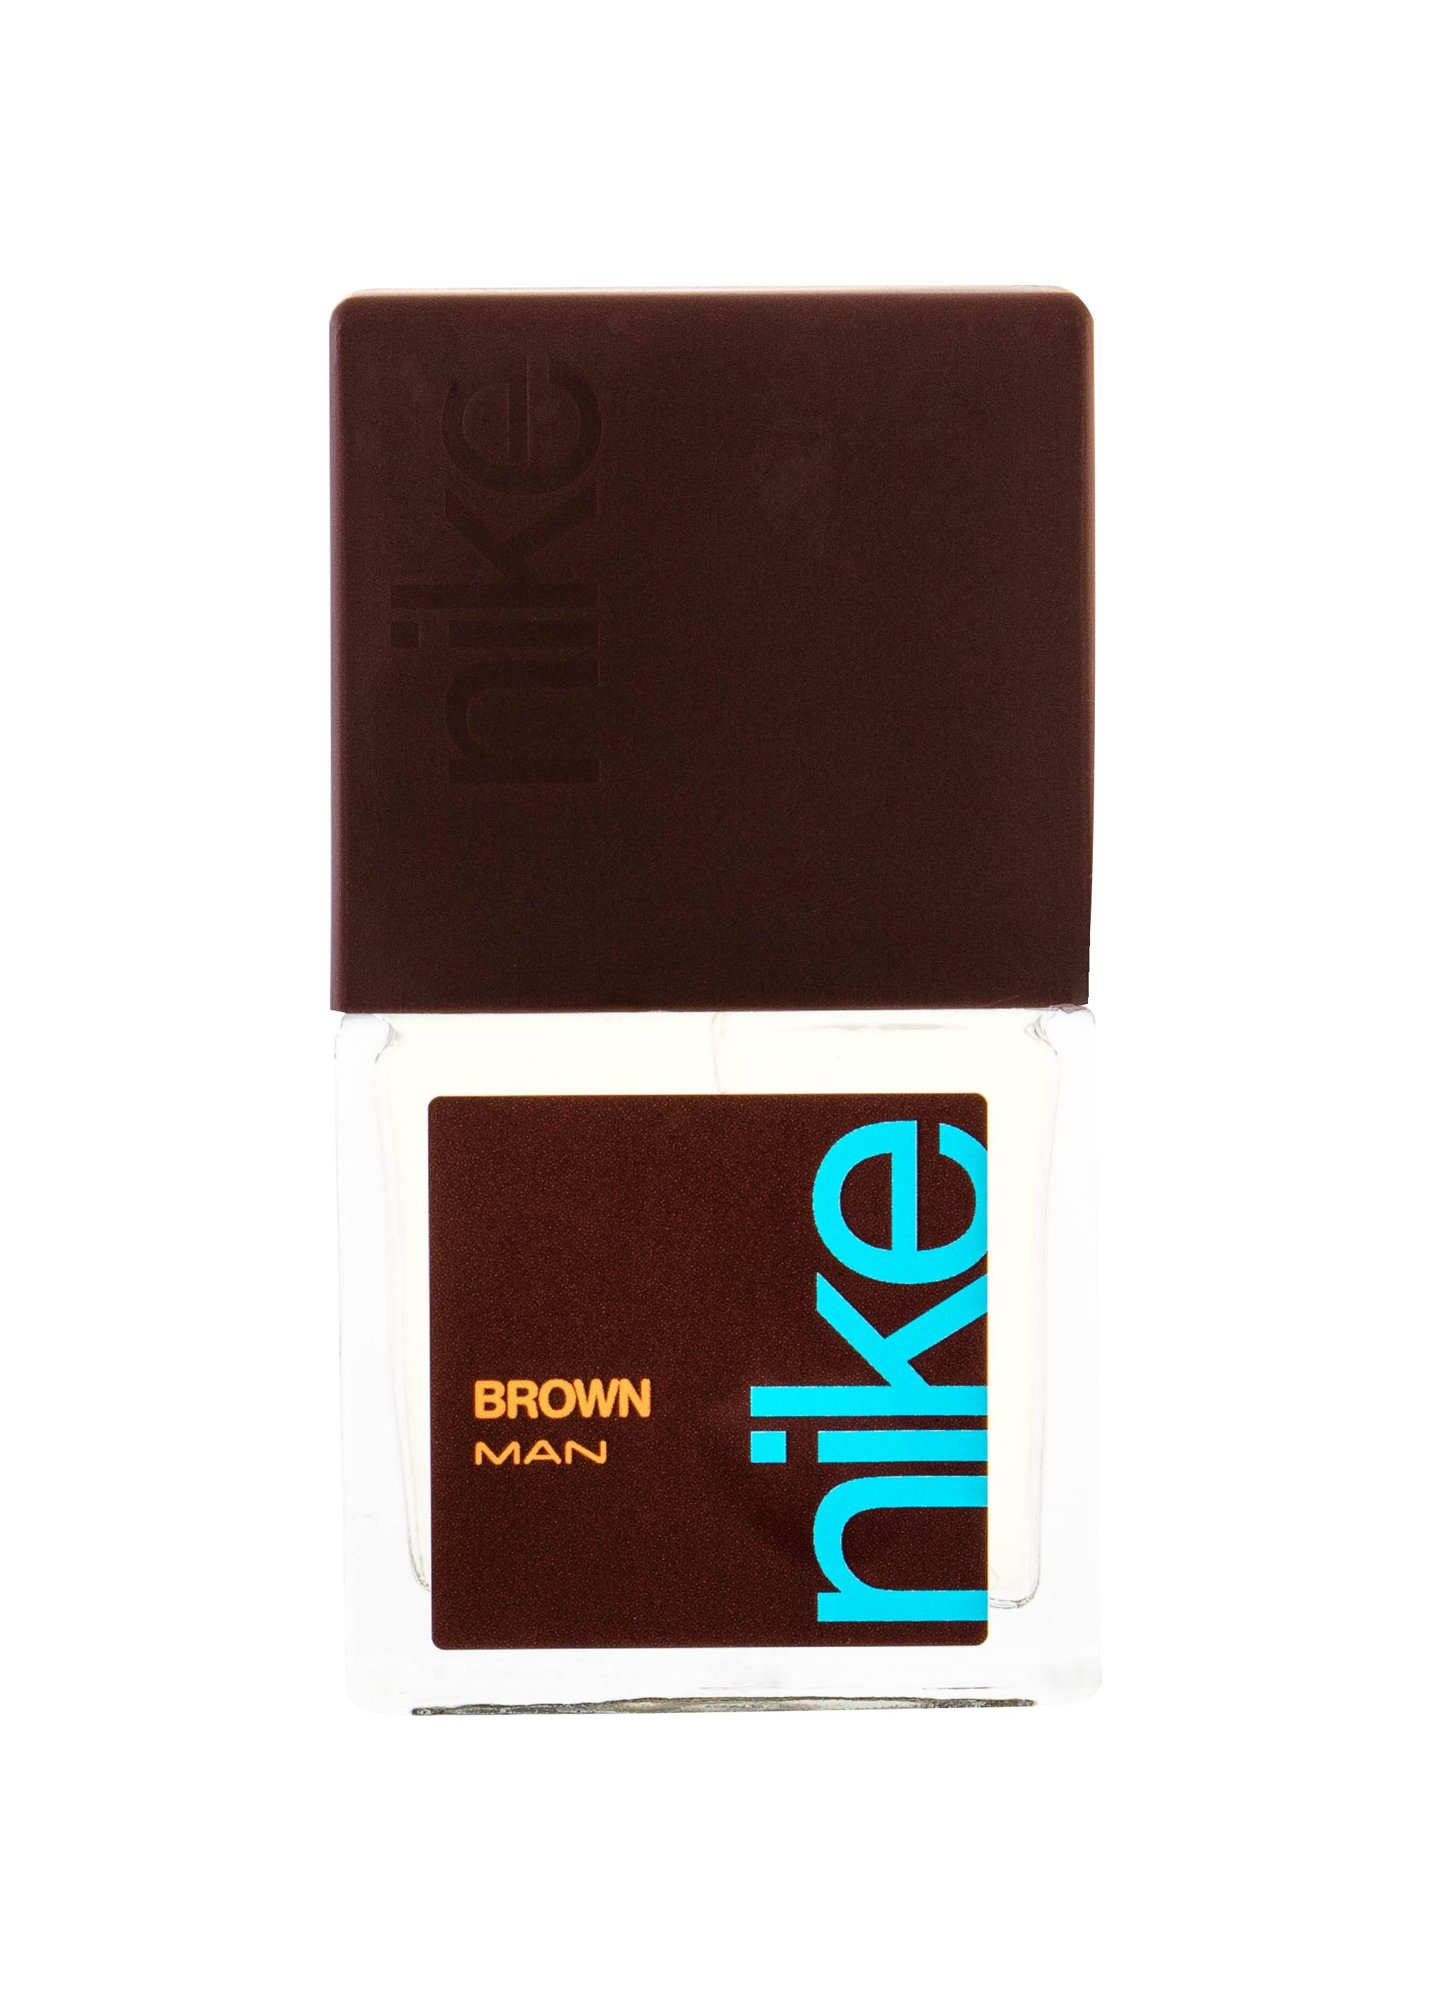 Nike Perfumes Brown Man Eau de Toilette 30ml